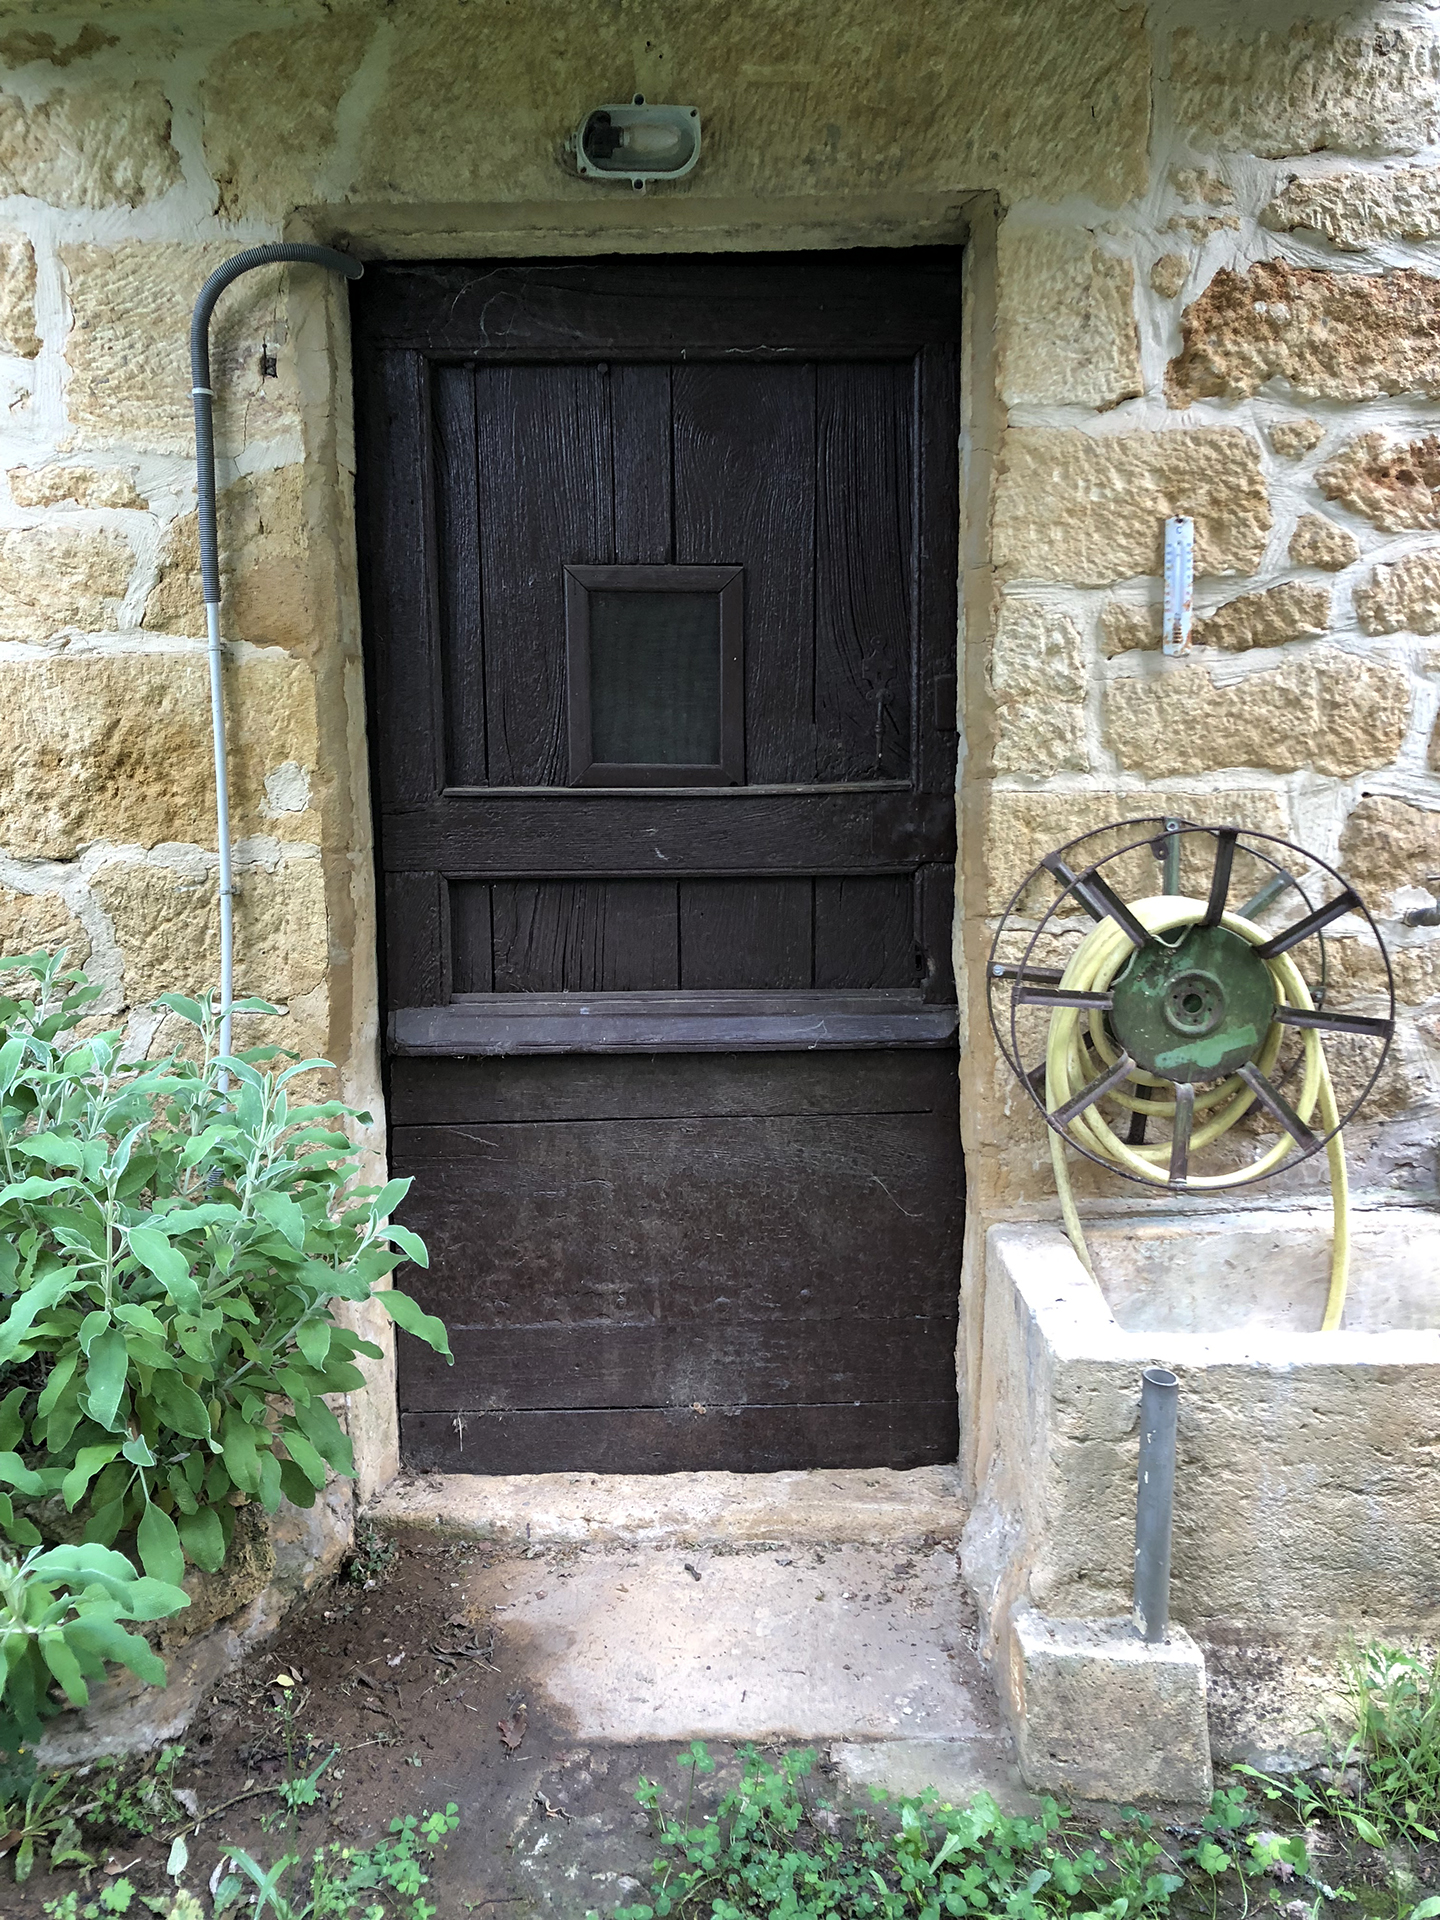 Entrance to the cellar